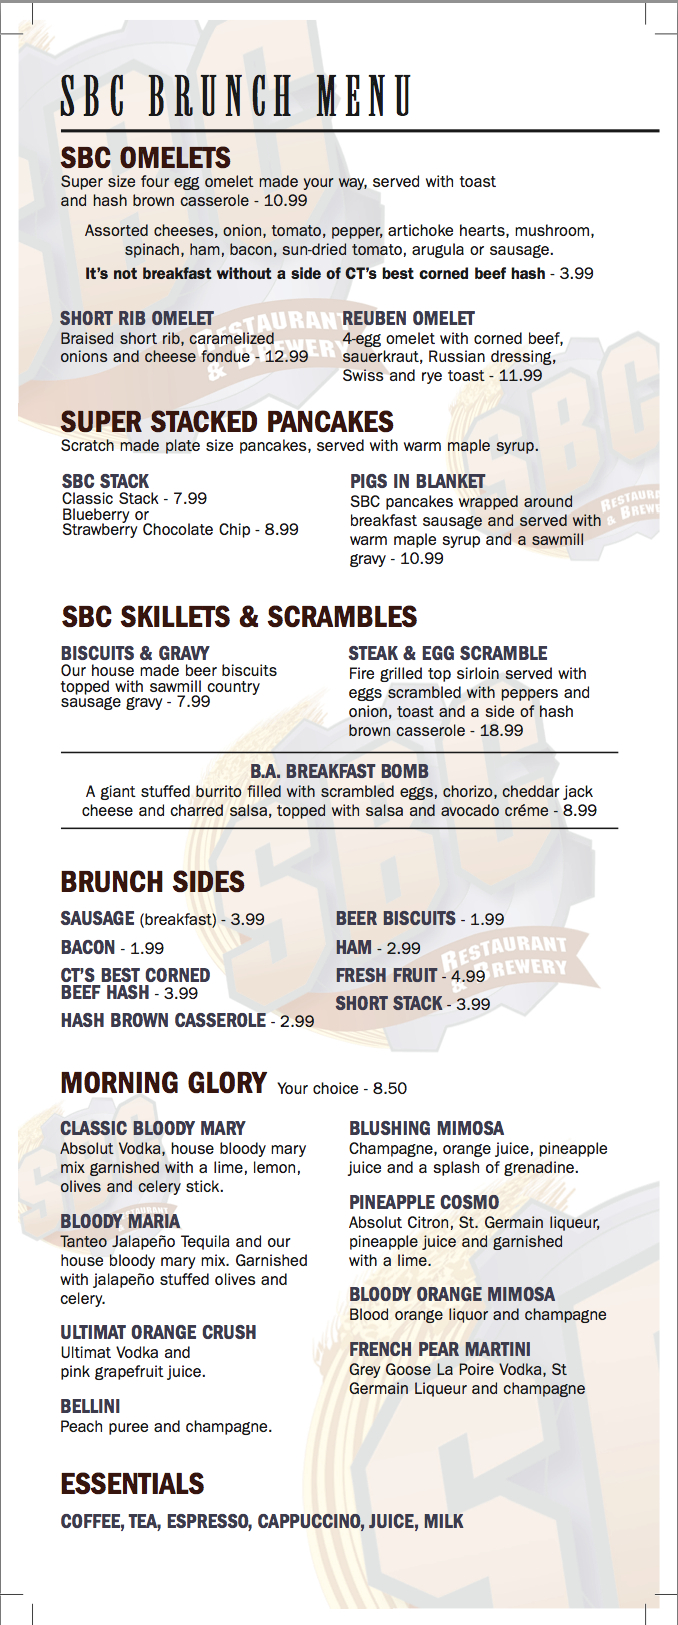 SBC_BRUNCH MENU.jpg